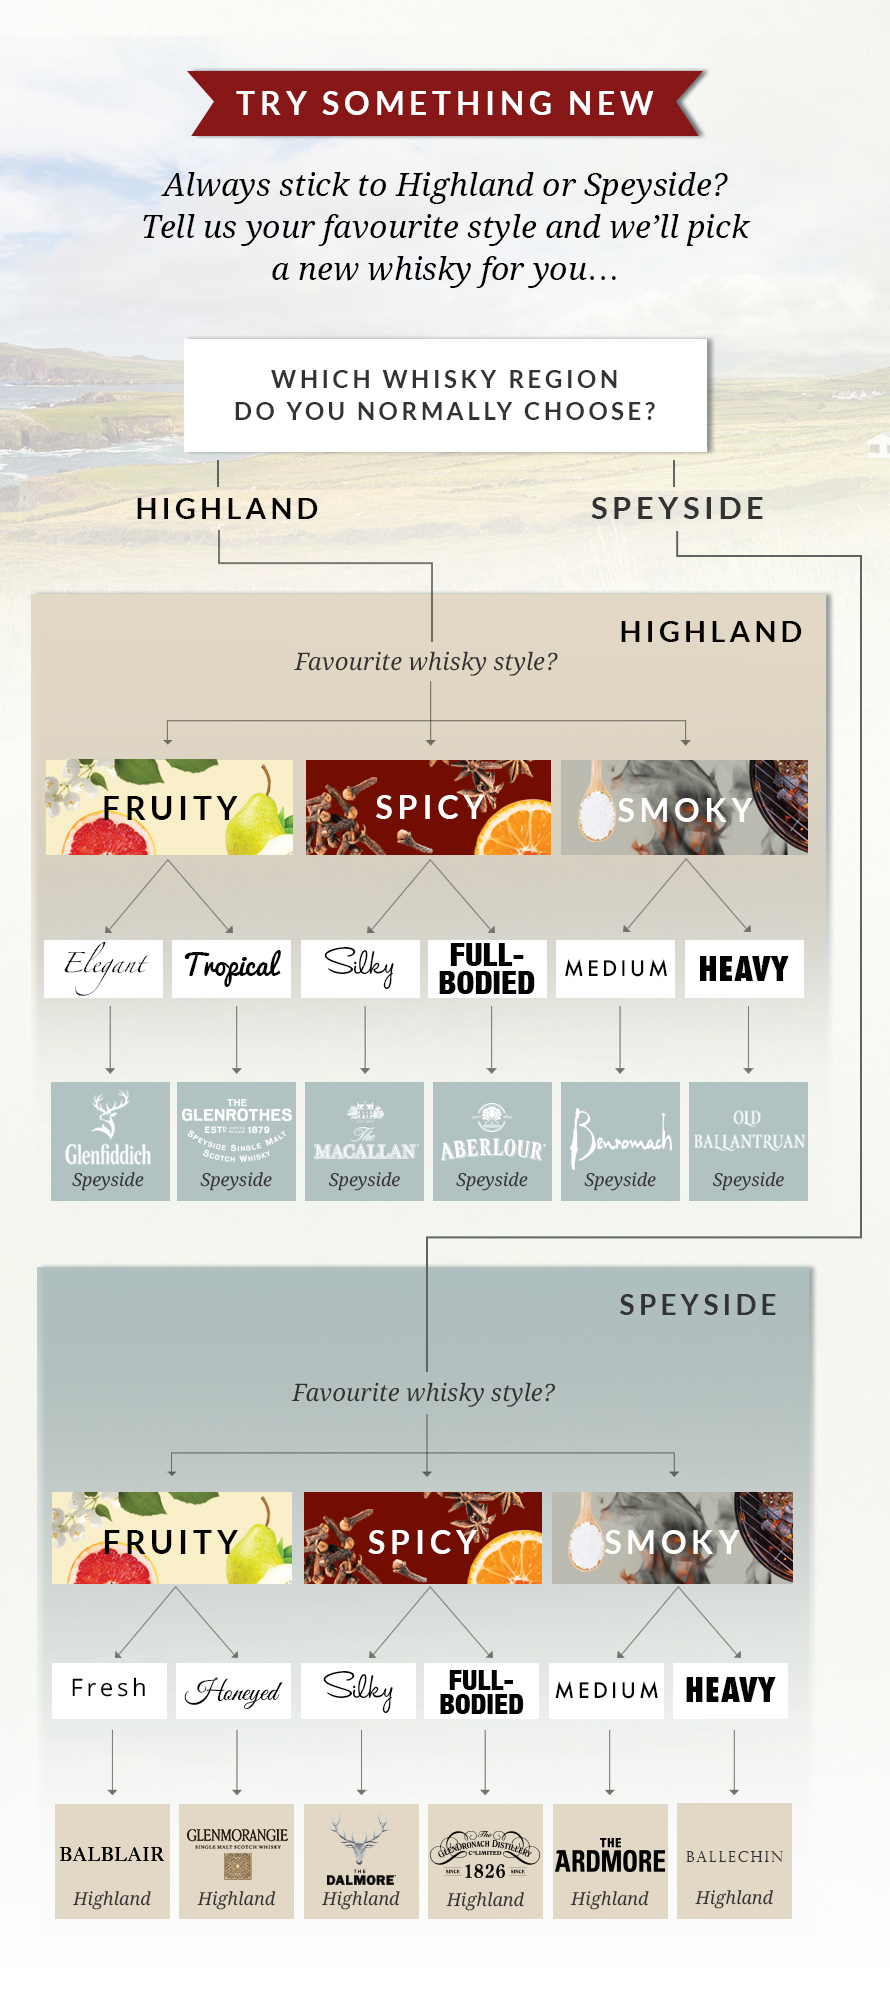 Flowchart to choose Highland and Speyside whisky brands based on flavour choices.